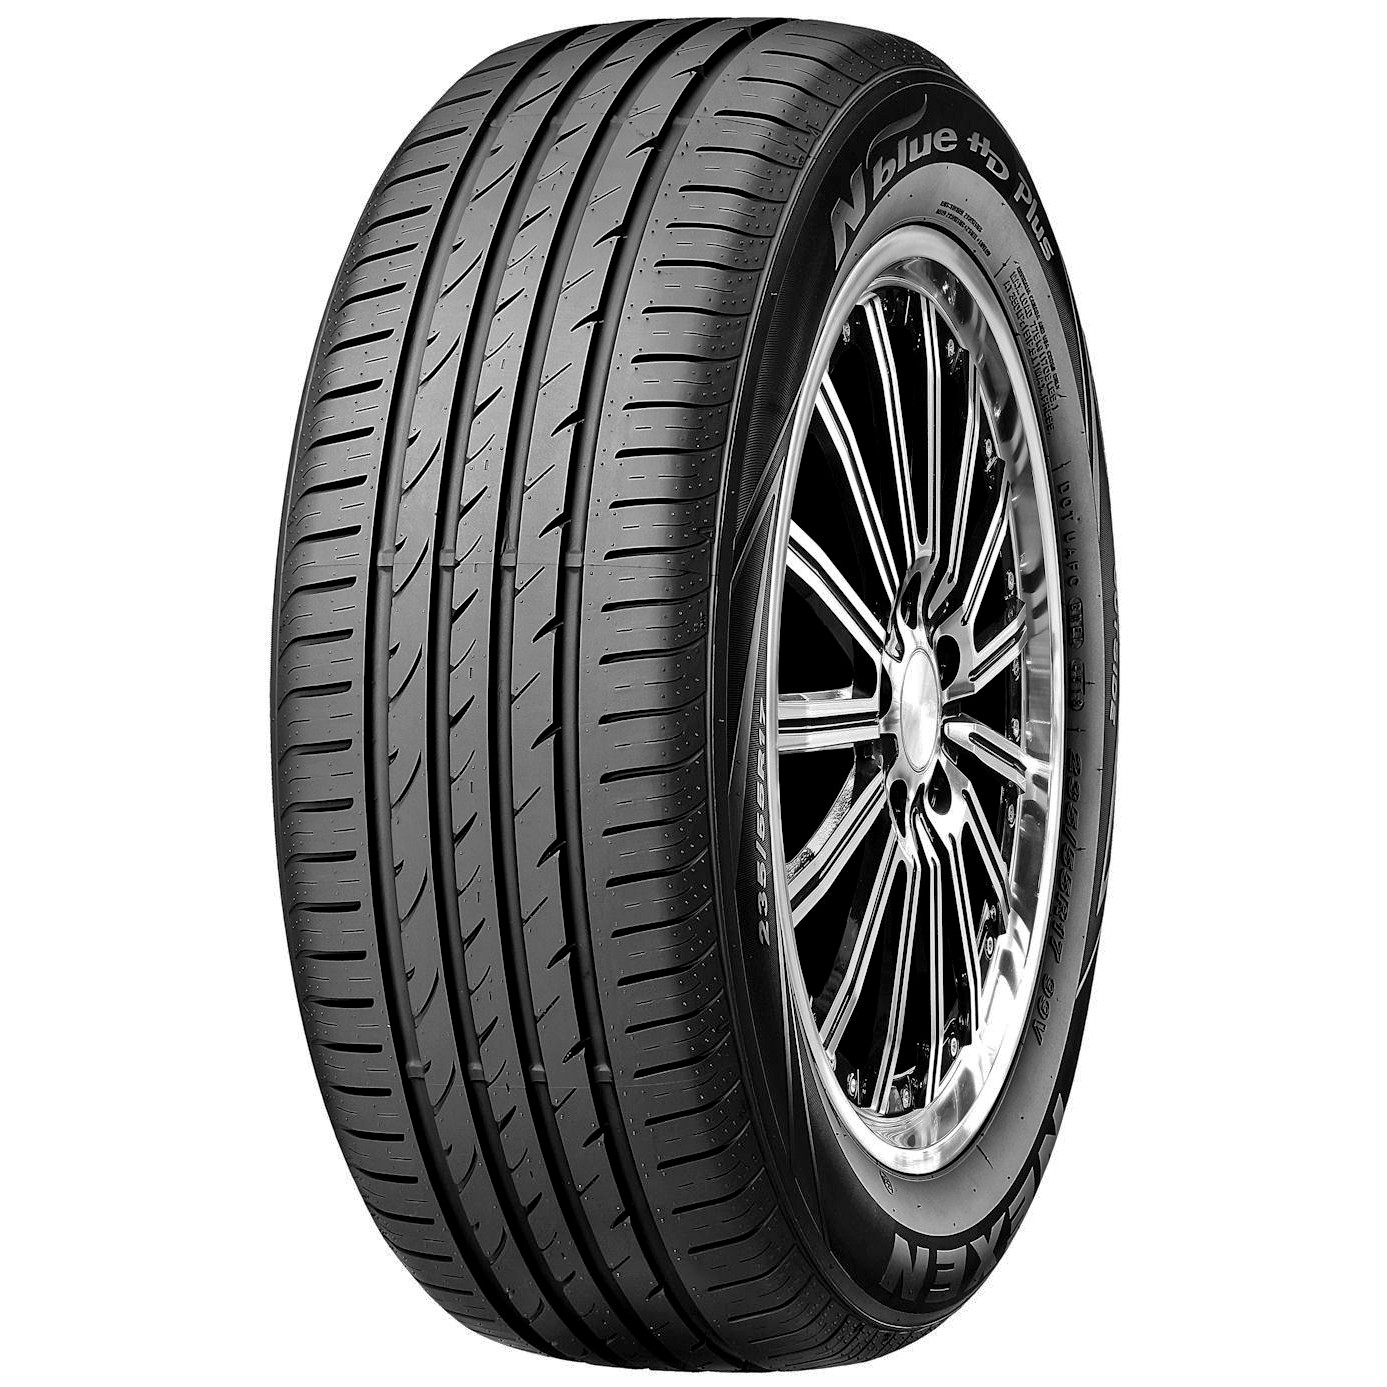 Летняя шина Nexen N'blue HD Plus 215/60 R17 96H